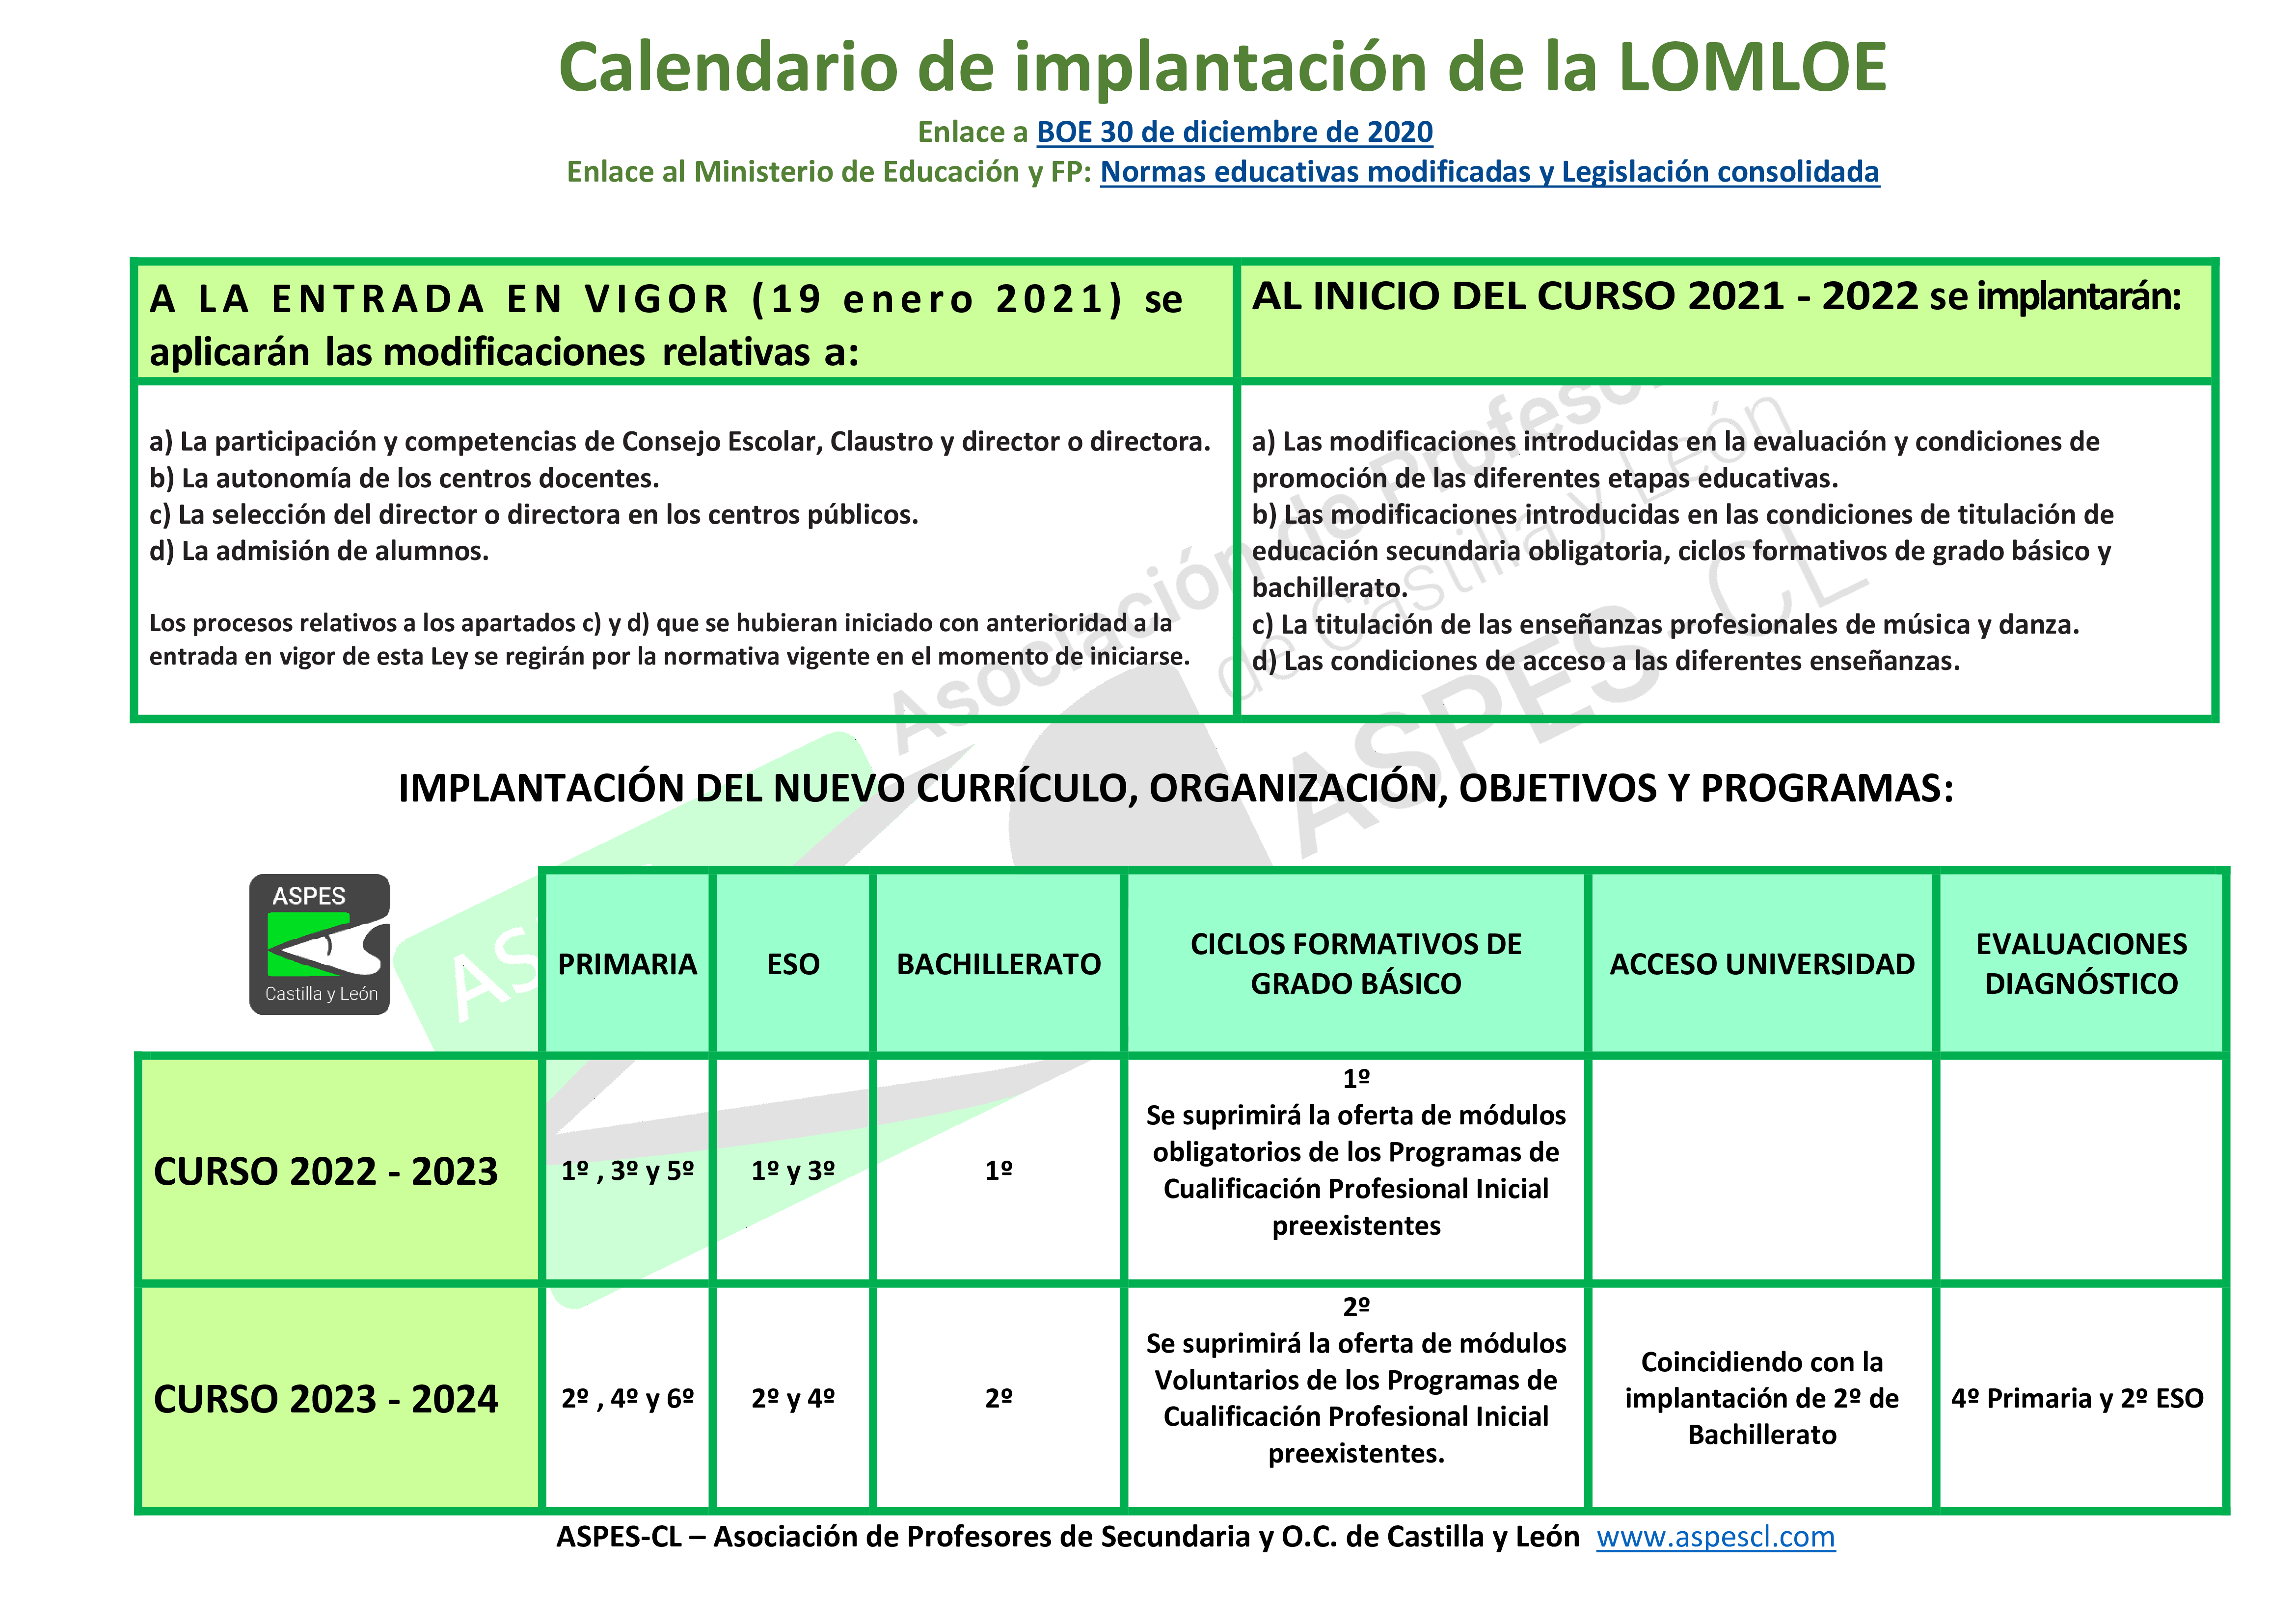 LOMLOE calendario implantacion